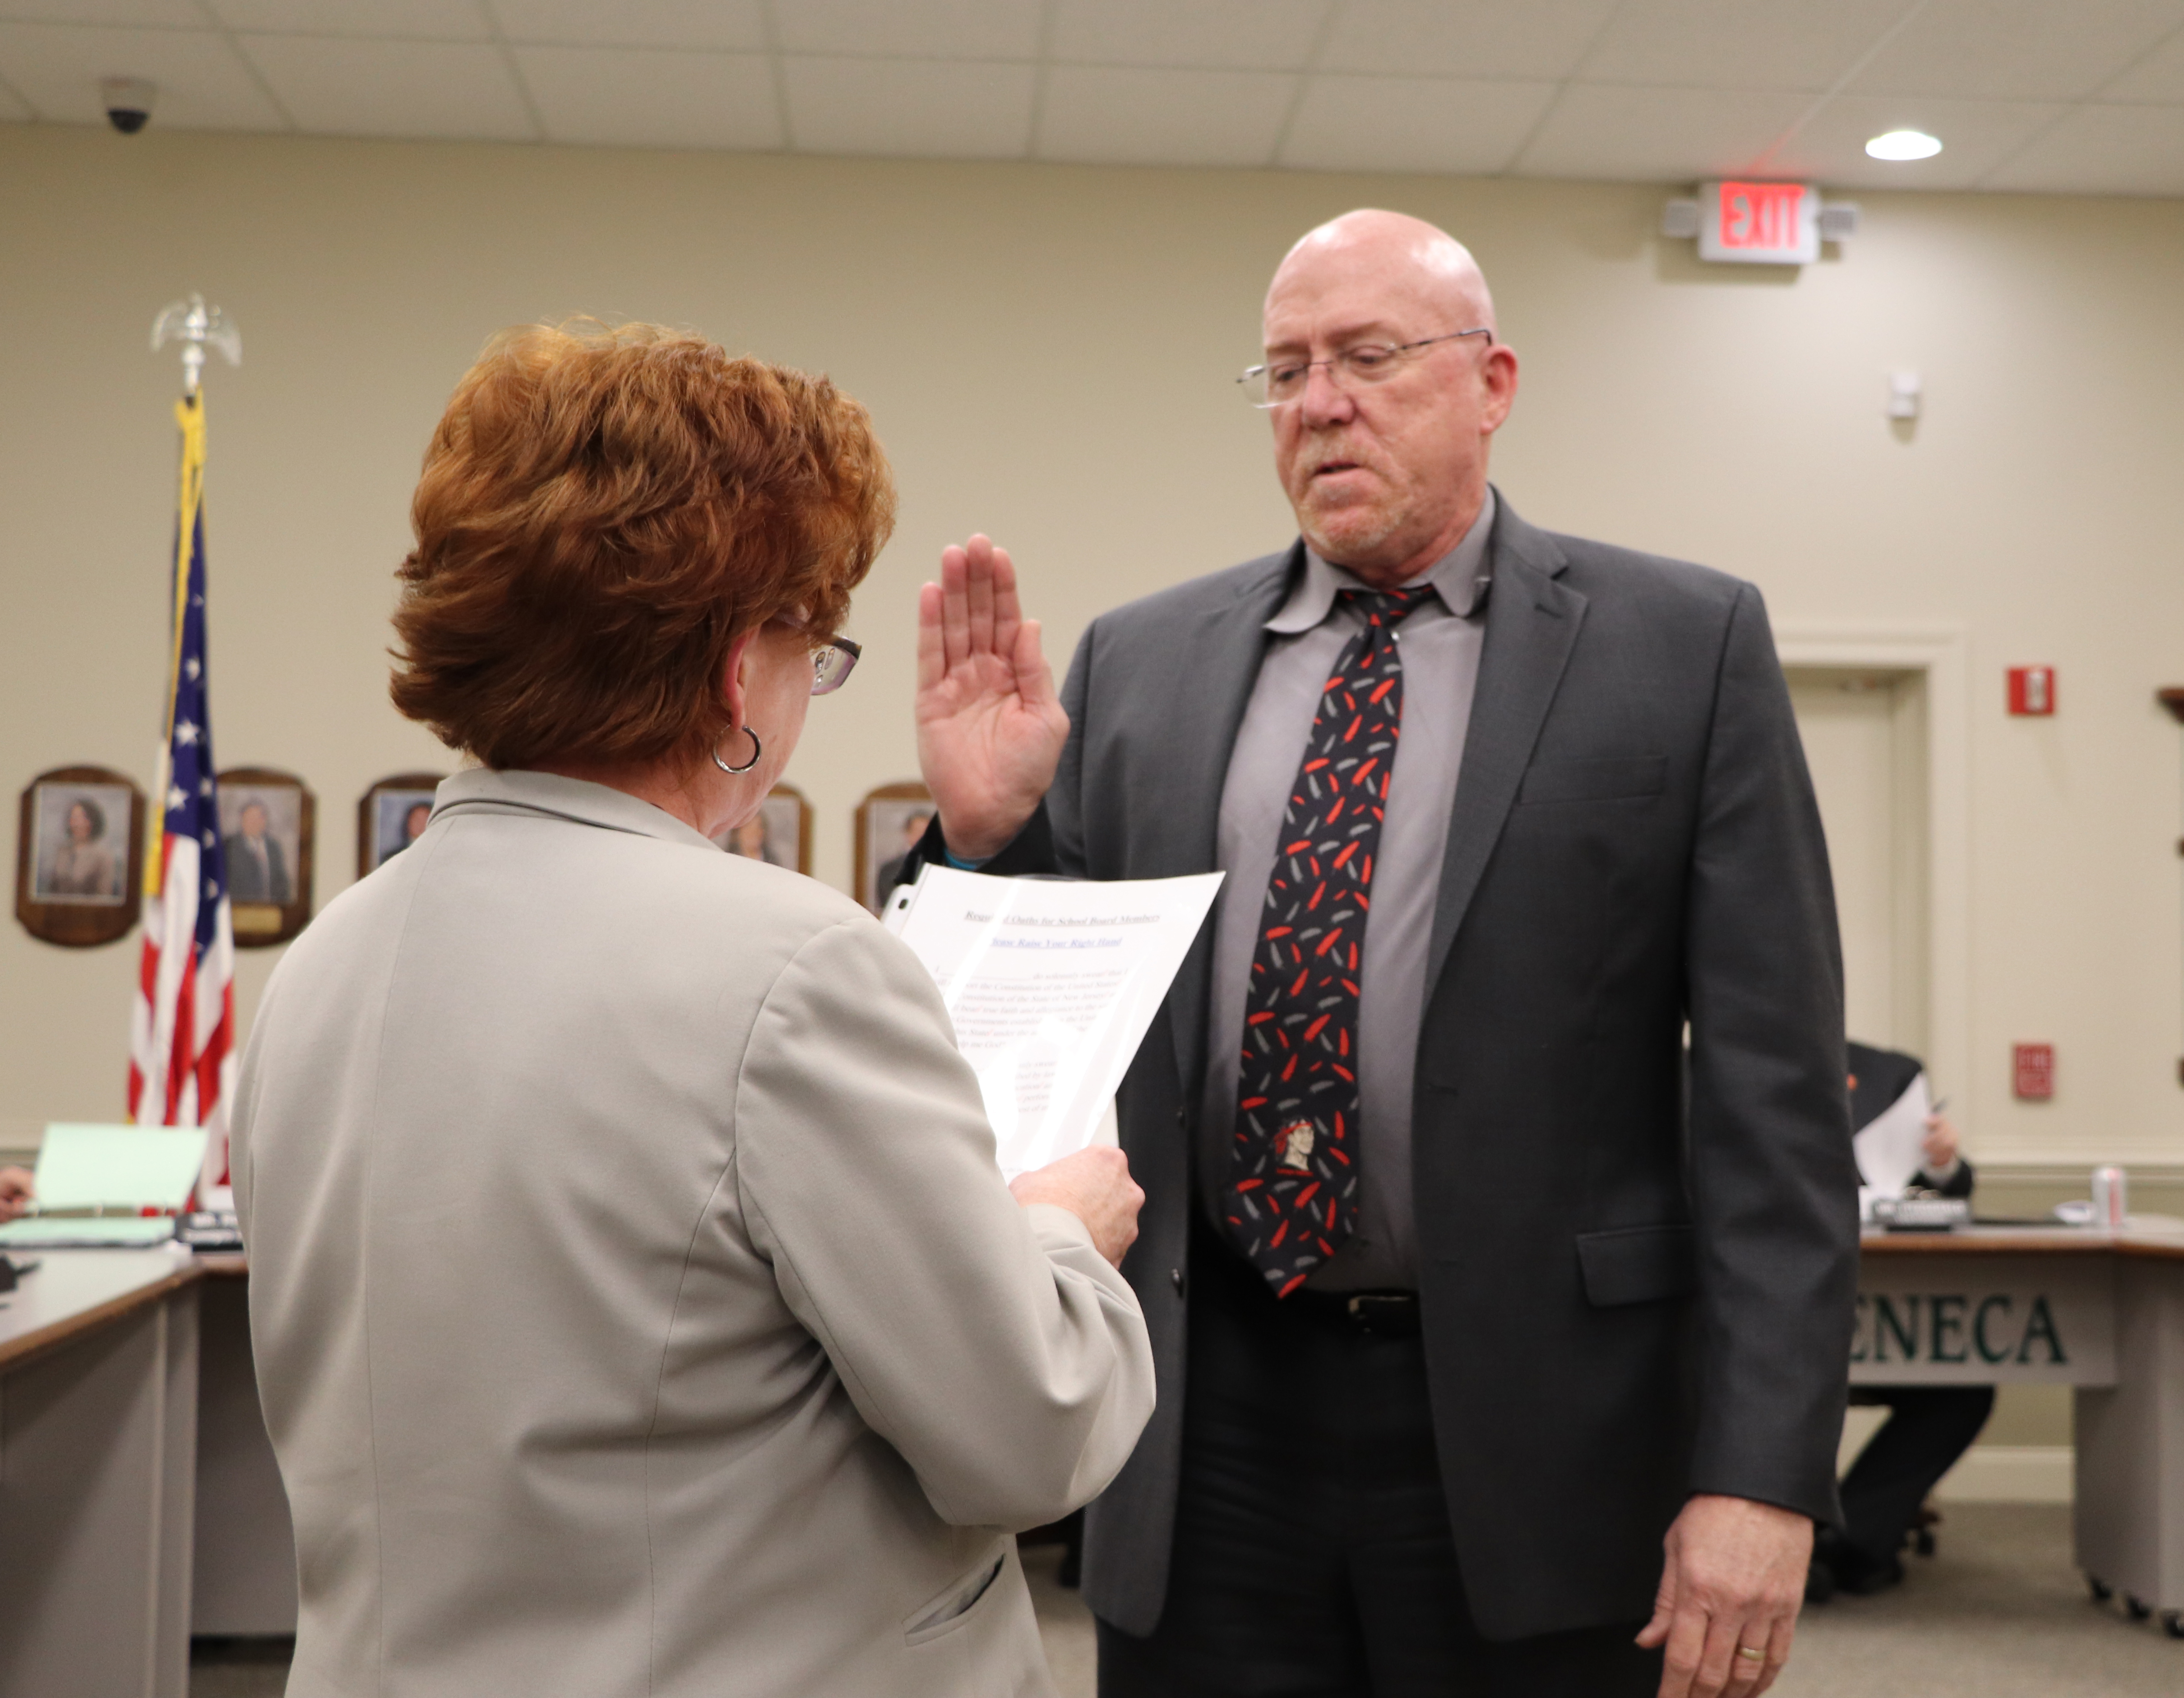 John Jeffers being sworn in for a new term.